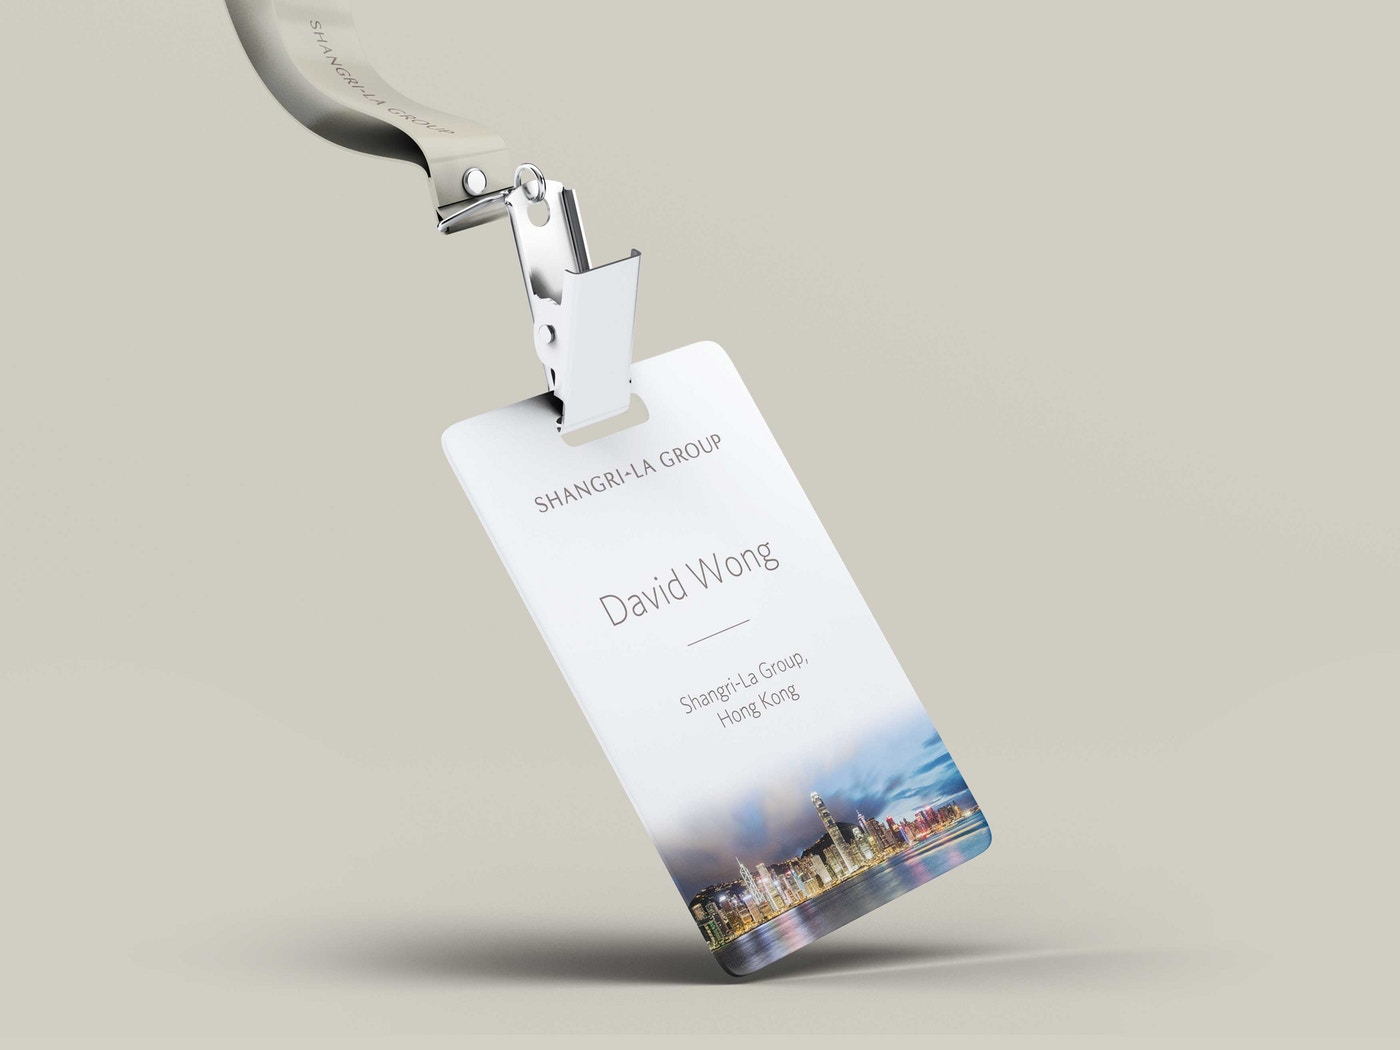 Shangri La Branded Name Badge